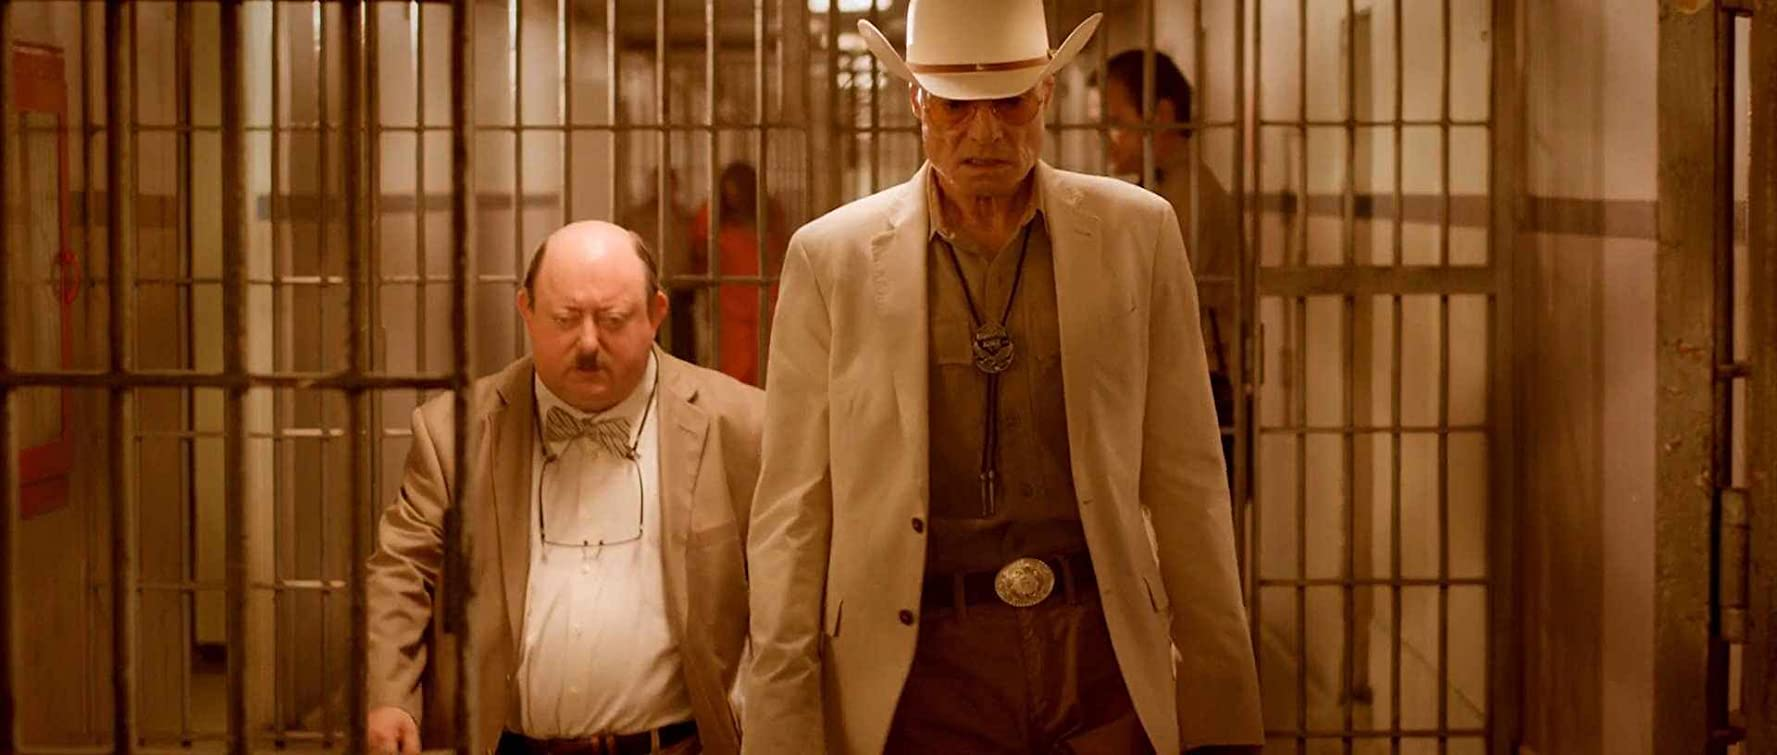 Dieter Laser and Laurence R. Harvey in The Human Centipede III (Final Sequence) (2015)